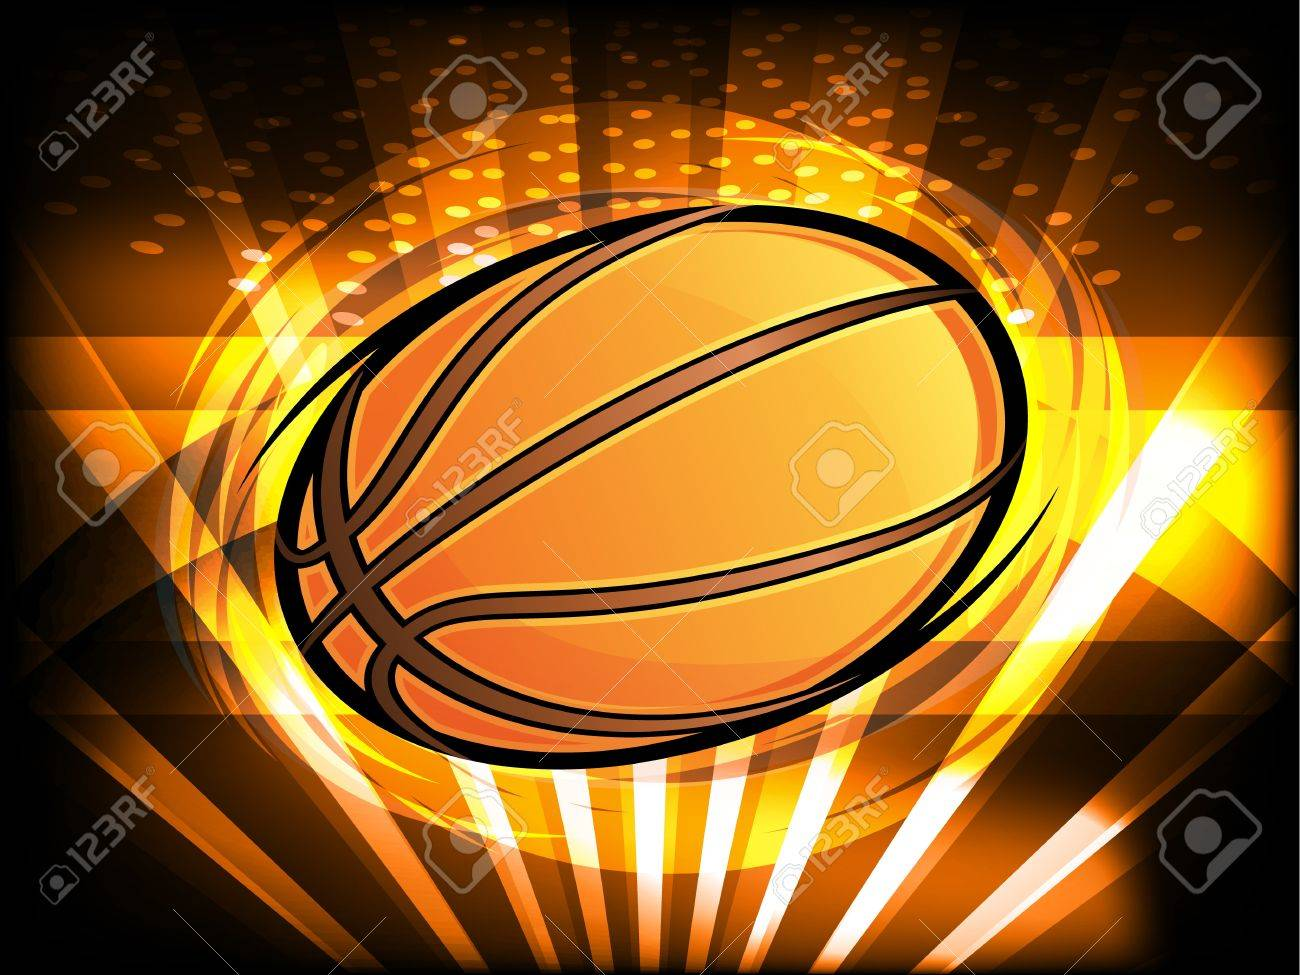 Basketball Icon with Bright Light Beams Spinning - 15311889